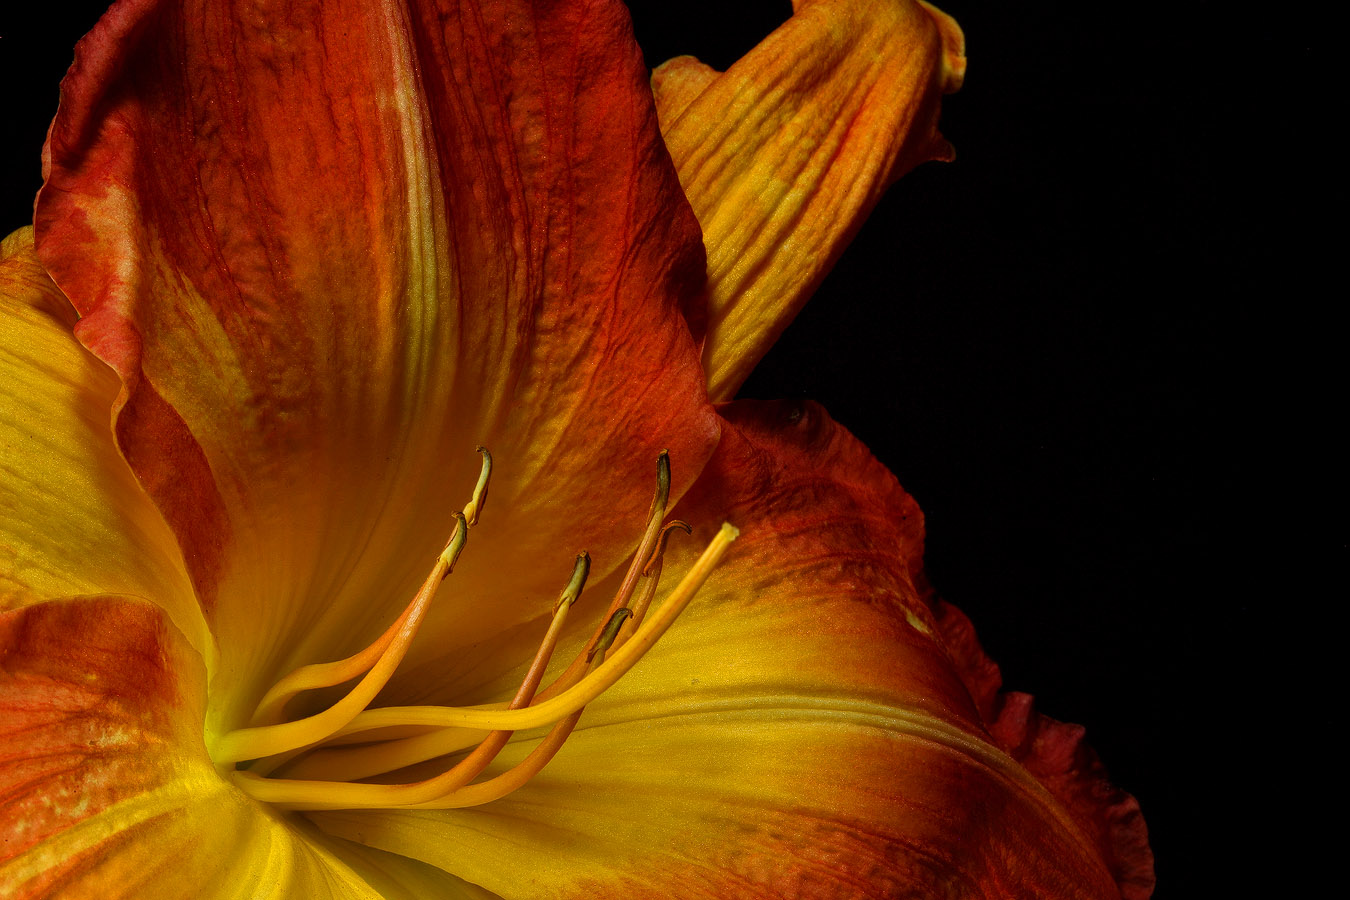 golden lily close dark img aw author sava gregory and verena